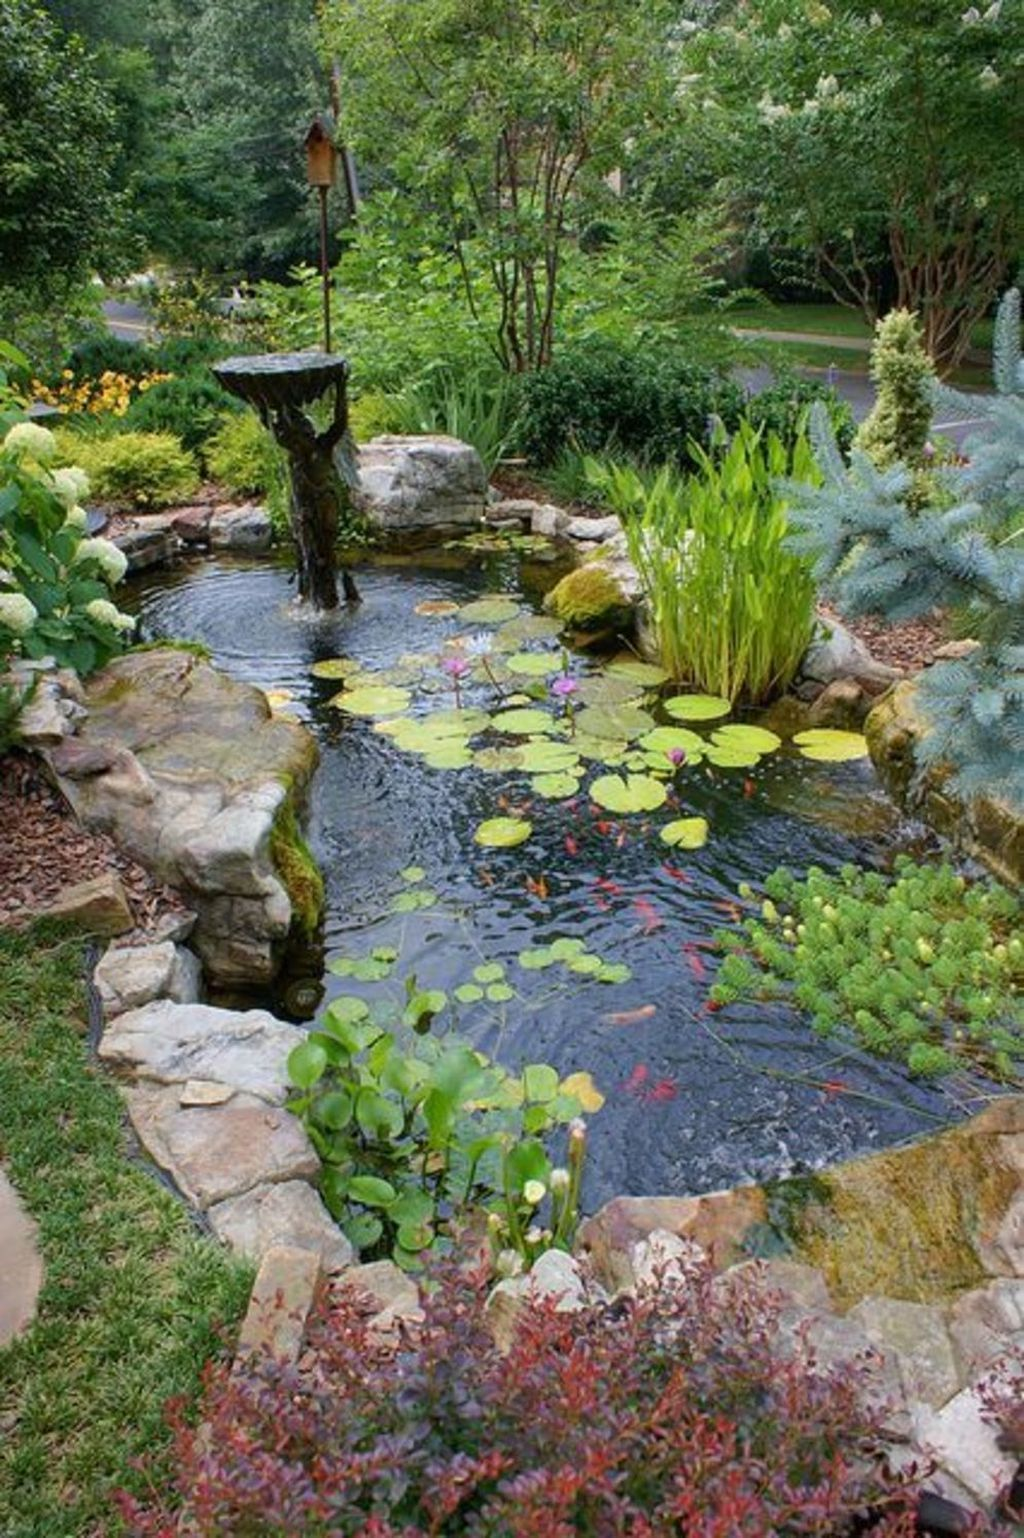 Cool Fish Pond Garden Landscaping Ideas For Backyard 01 Backyard Cool Fish Garden Ideas Land Small Water Gardens Small Garden Landscape Garden Pond Design